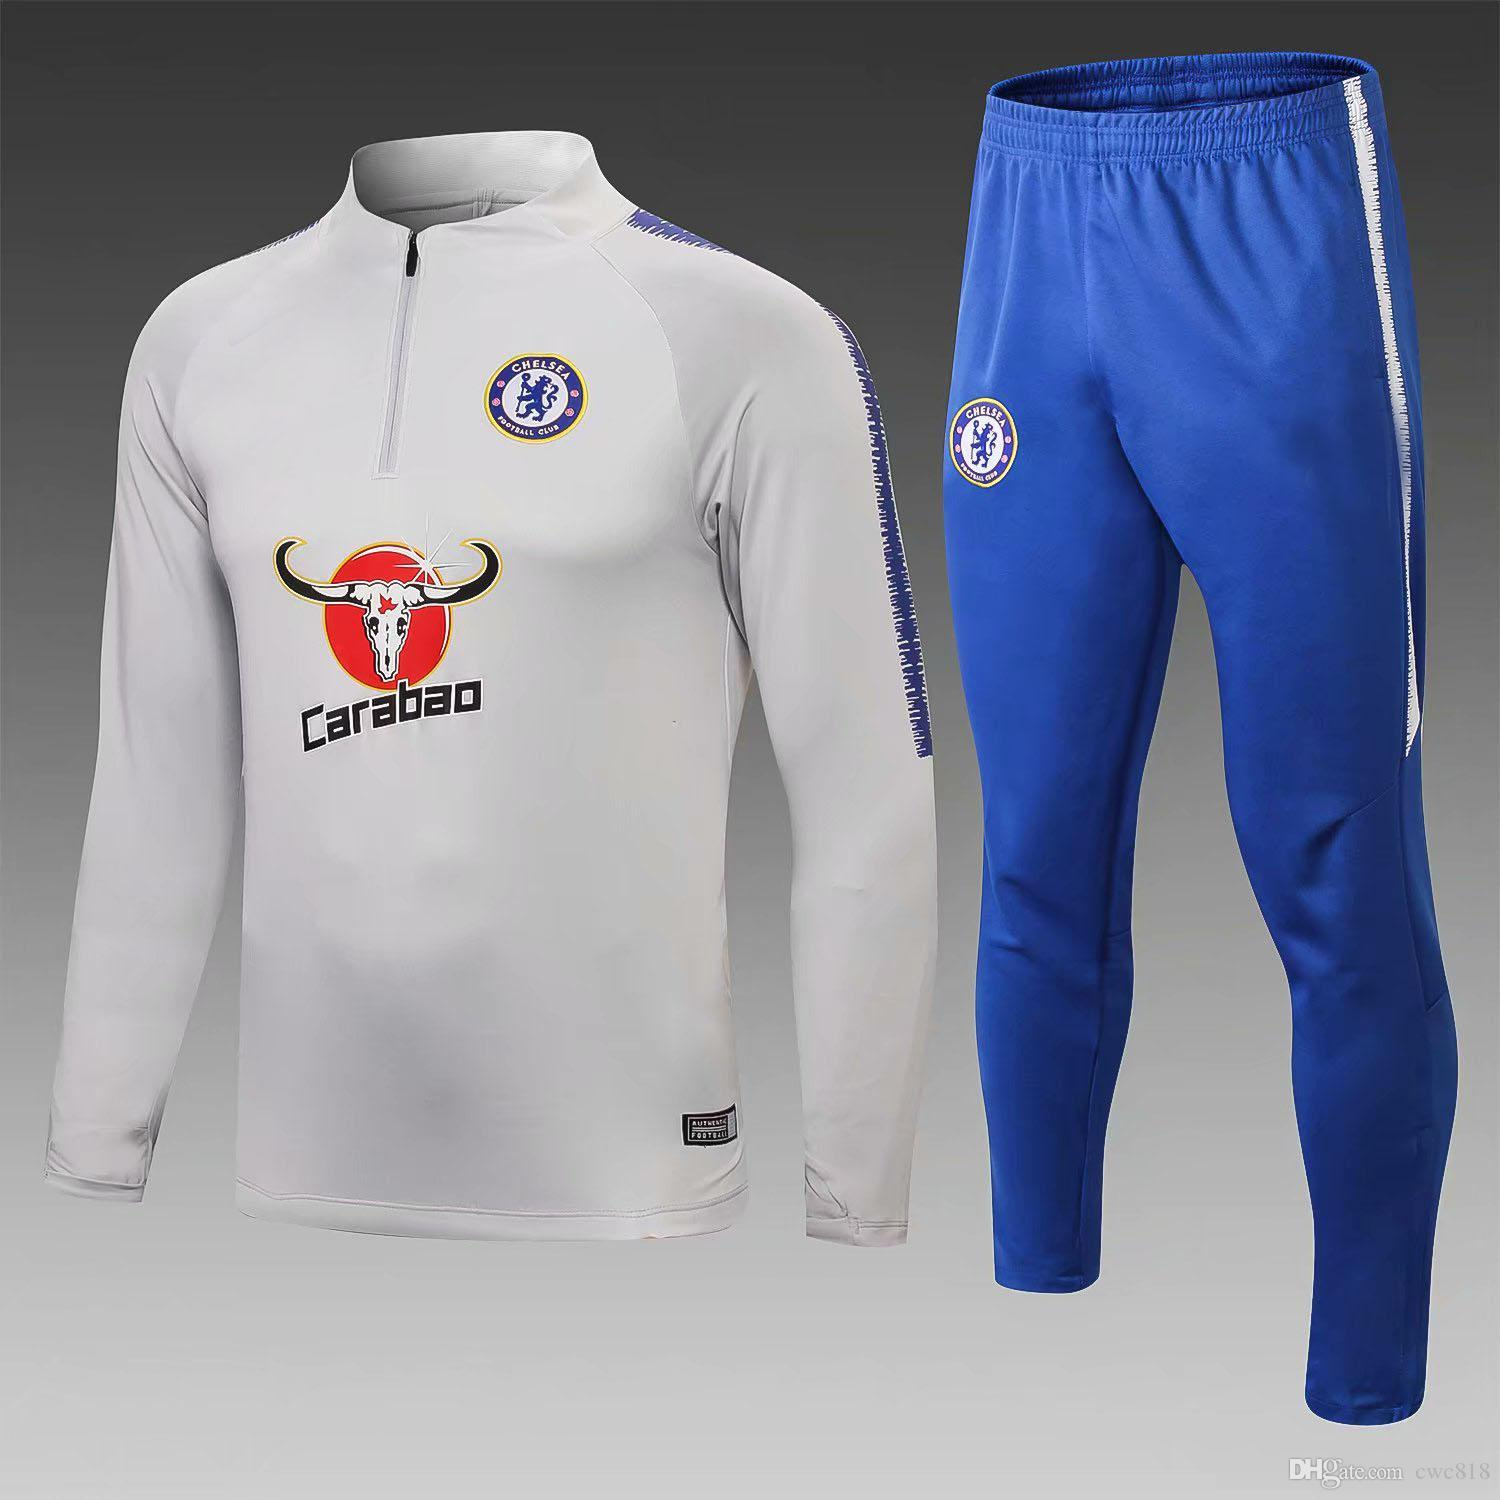 5377efbb 2019 Chelsea Training Suit Kits 2018 2019 HAZARD GIROUD KANTE MOSES Soccer  Jogging Jacket Chelsea Survetement Football Tracksuit Suit From Cwc818, ...